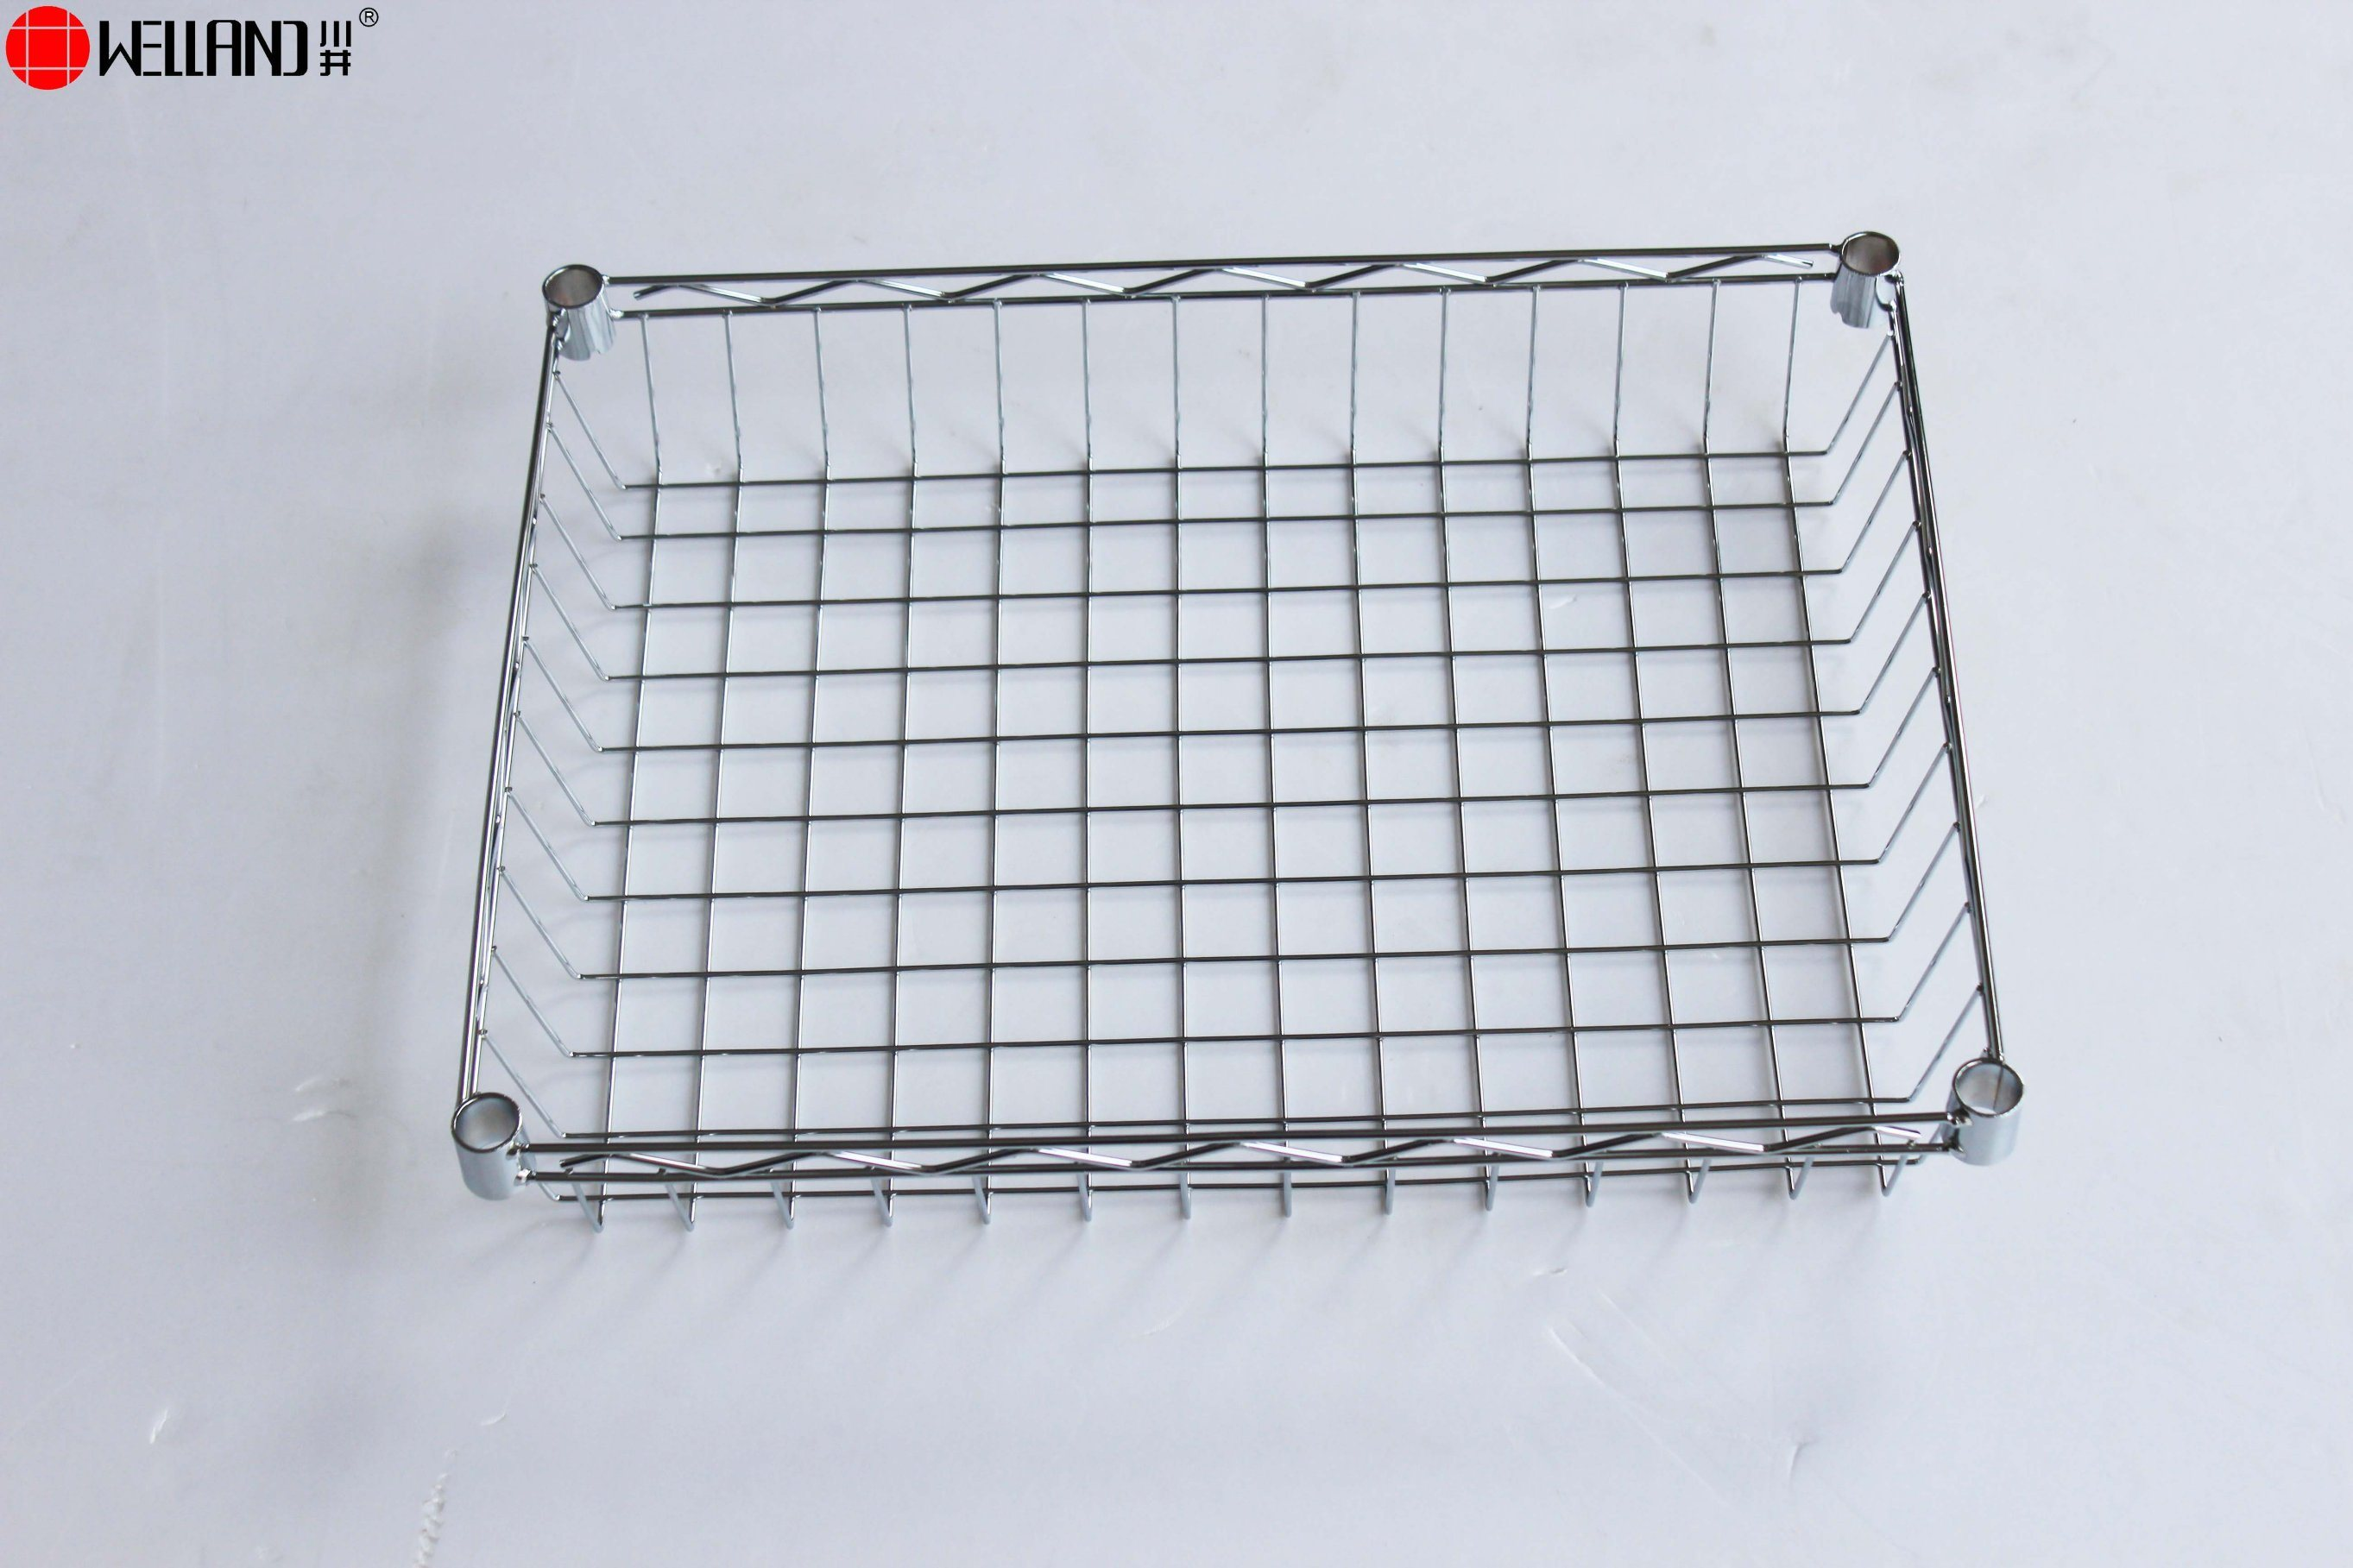 China DIY Chrome Kitchen Metal Wire Basket Trolley Rack with Nylon ...